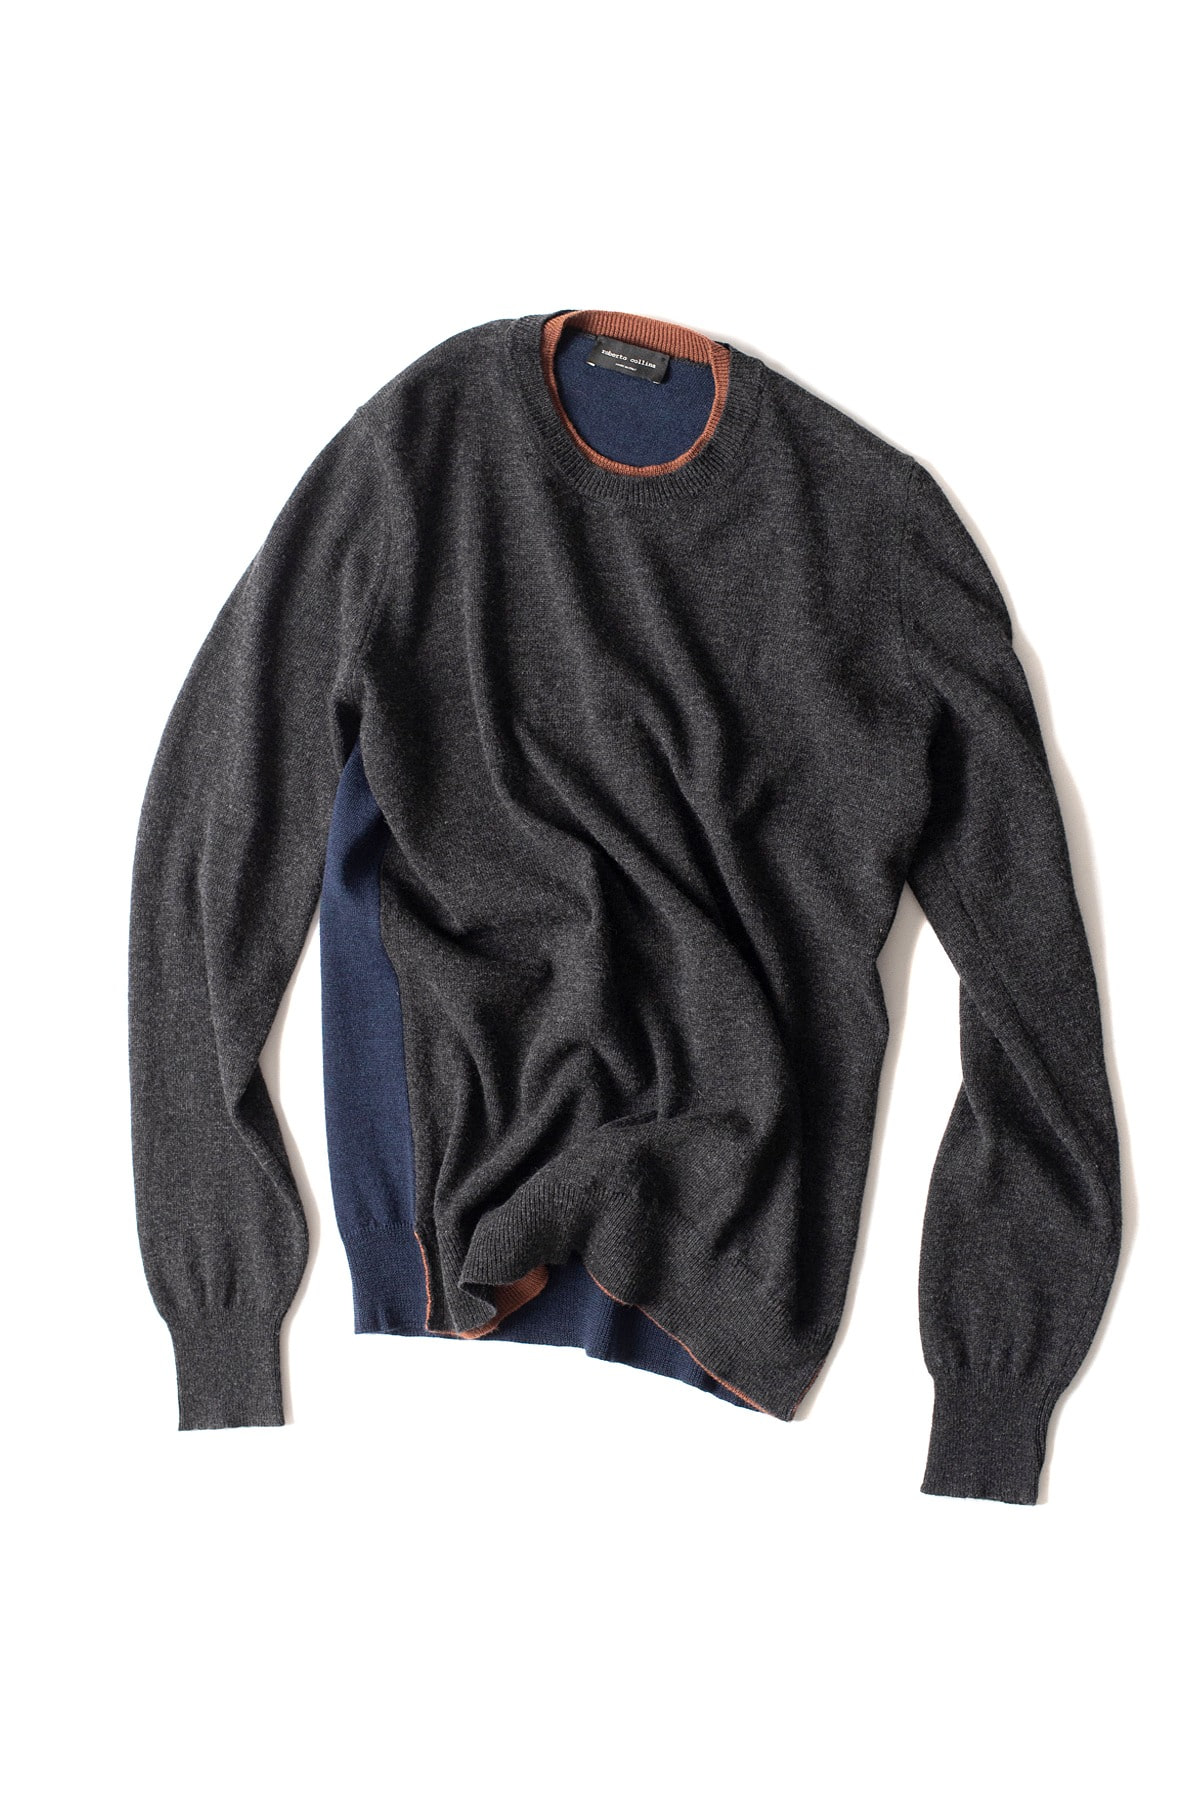 roberto collina : L/S Knit Round Neck Sweater (Charcoal)